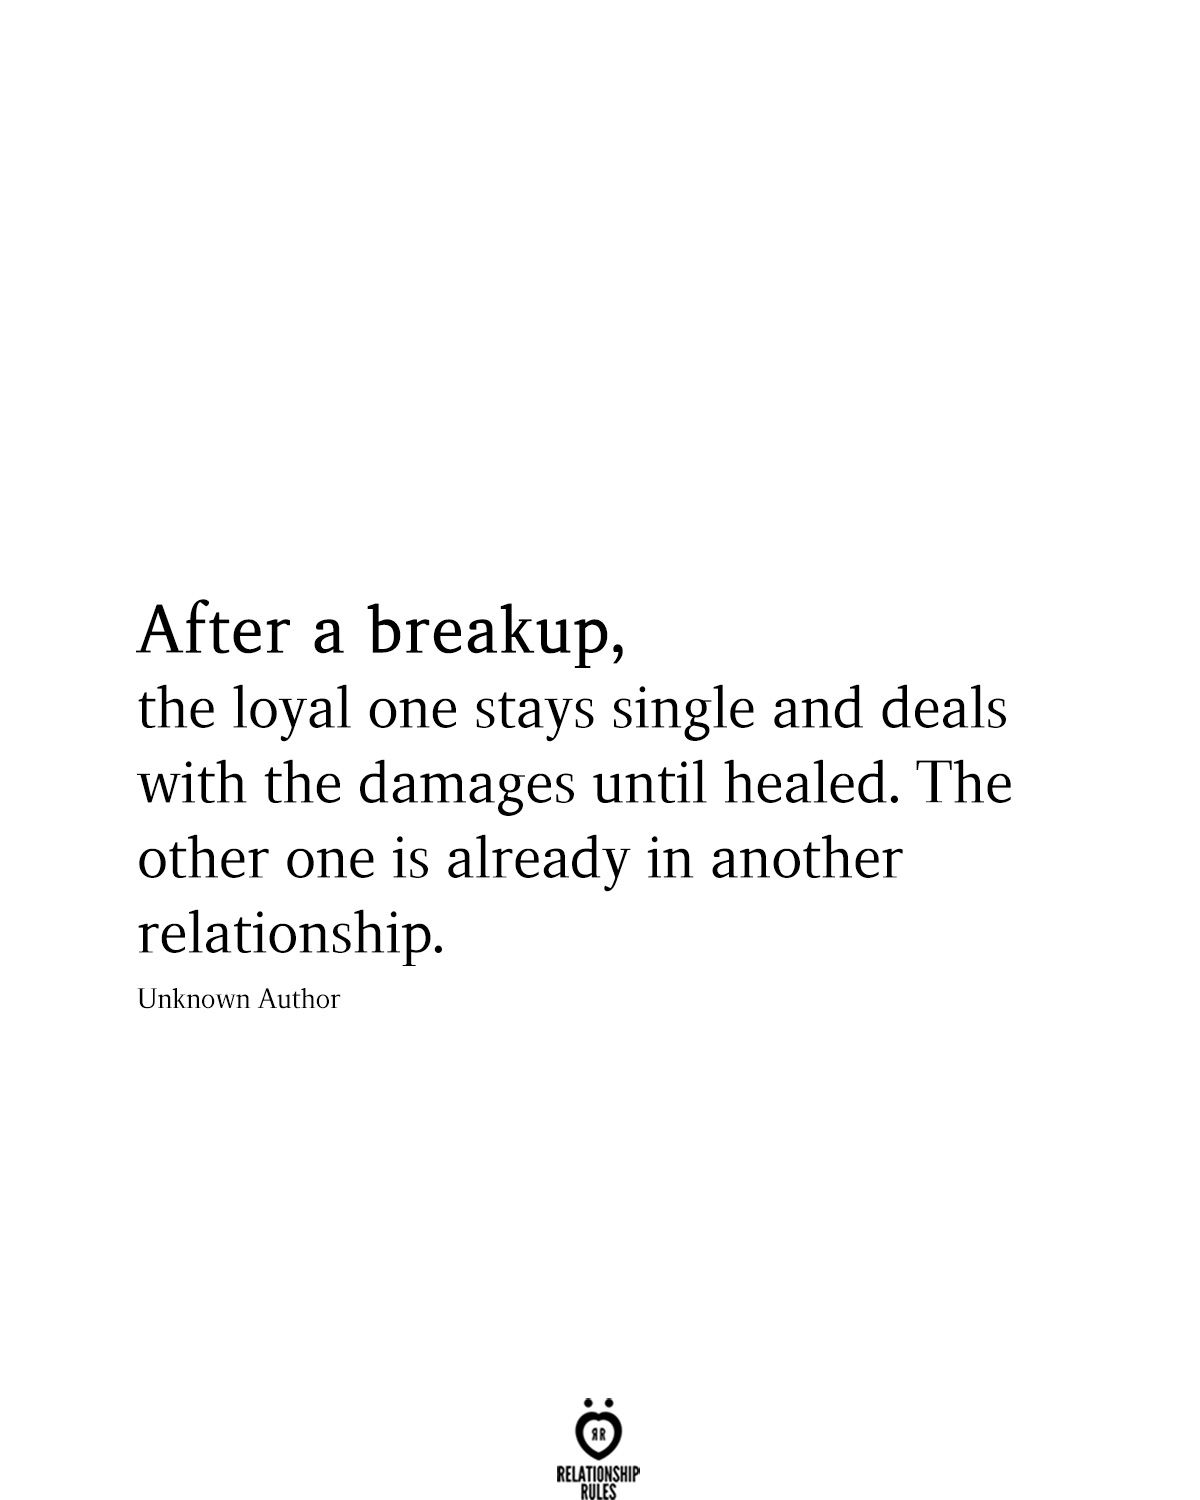 After A Breakup, The Loyal One Stays Single And